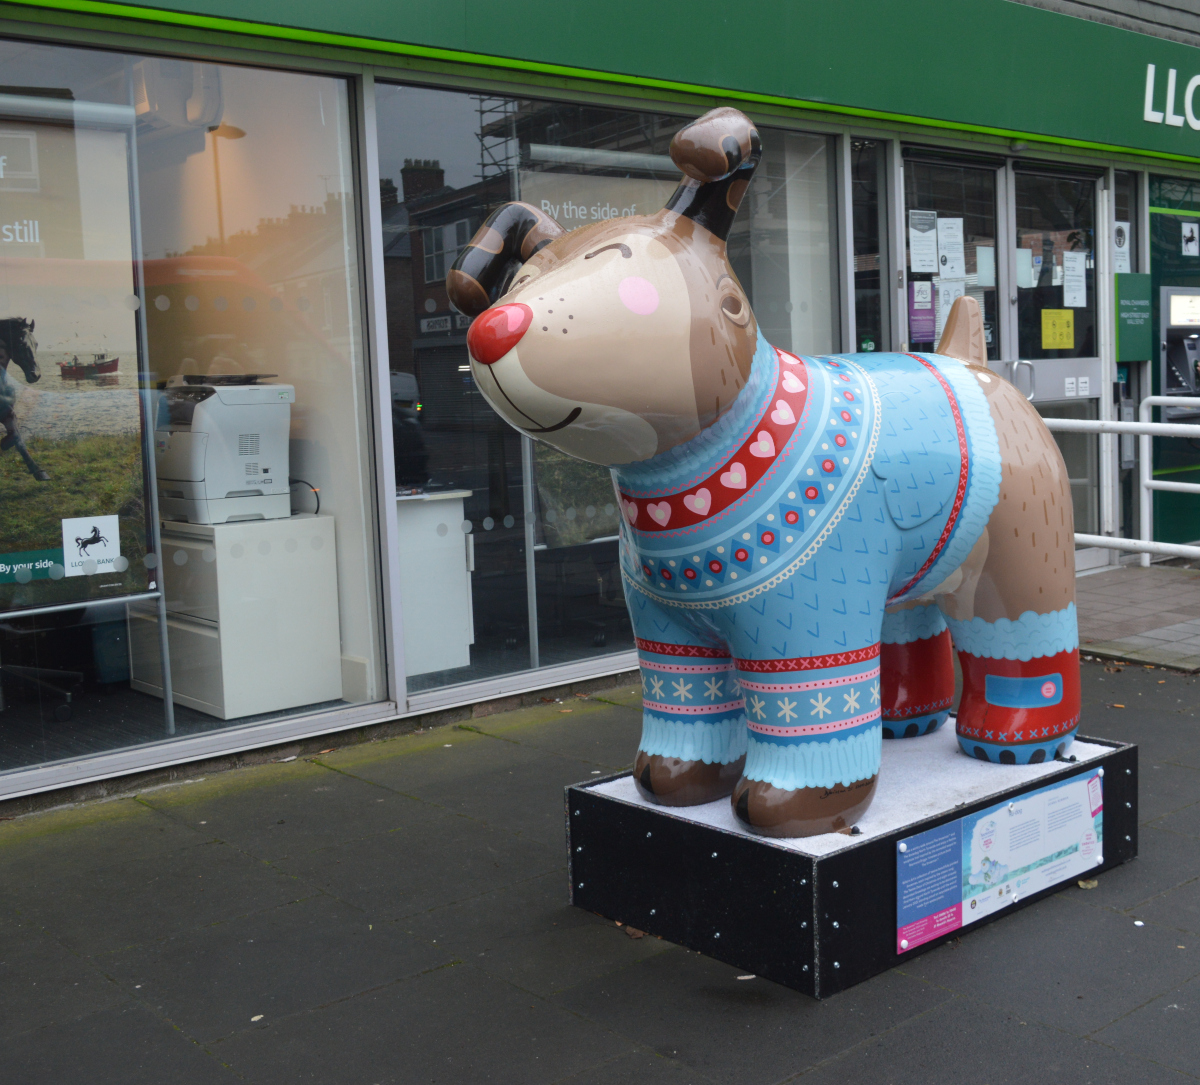 Snowdog statue - This is Ru dog with a red nose and colourful Christmas jumper